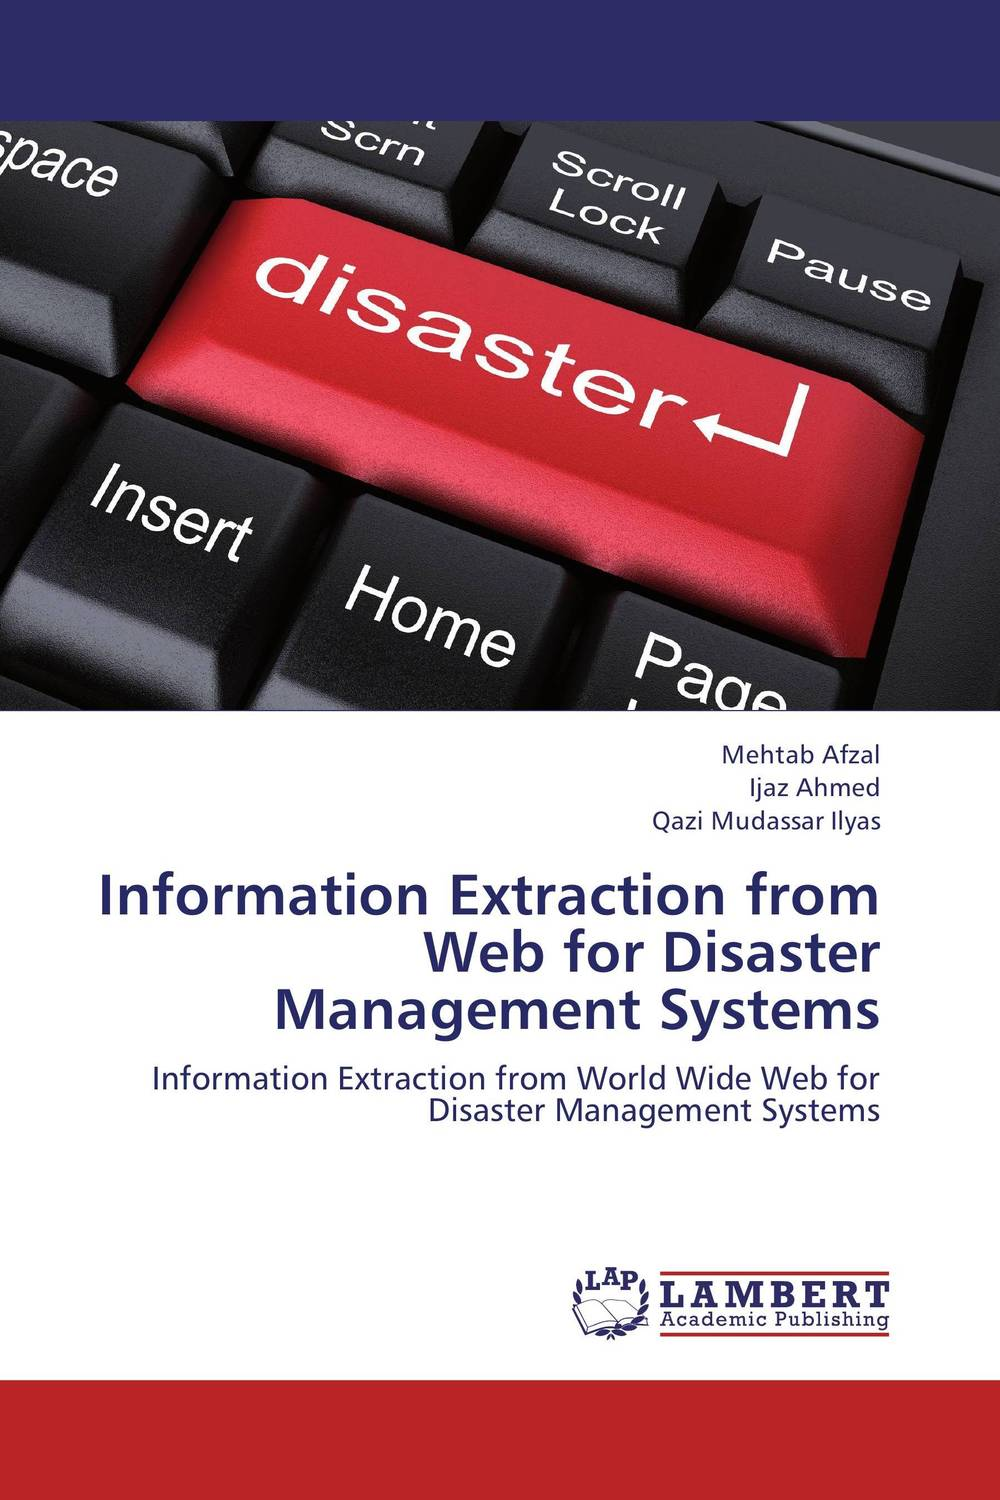 Information Extraction from Web for Disaster Management Systems ноутбук msi gp62m 7rdx 2097xru wot edition 9s7 16j9e2 2097 intel core i7 7700hq 2 8 ghz 8192mb 1000gb no odd nvidia geforce gtx 1050 2048mb wi fi bluetooth cam 15 6 1920x1080 dos